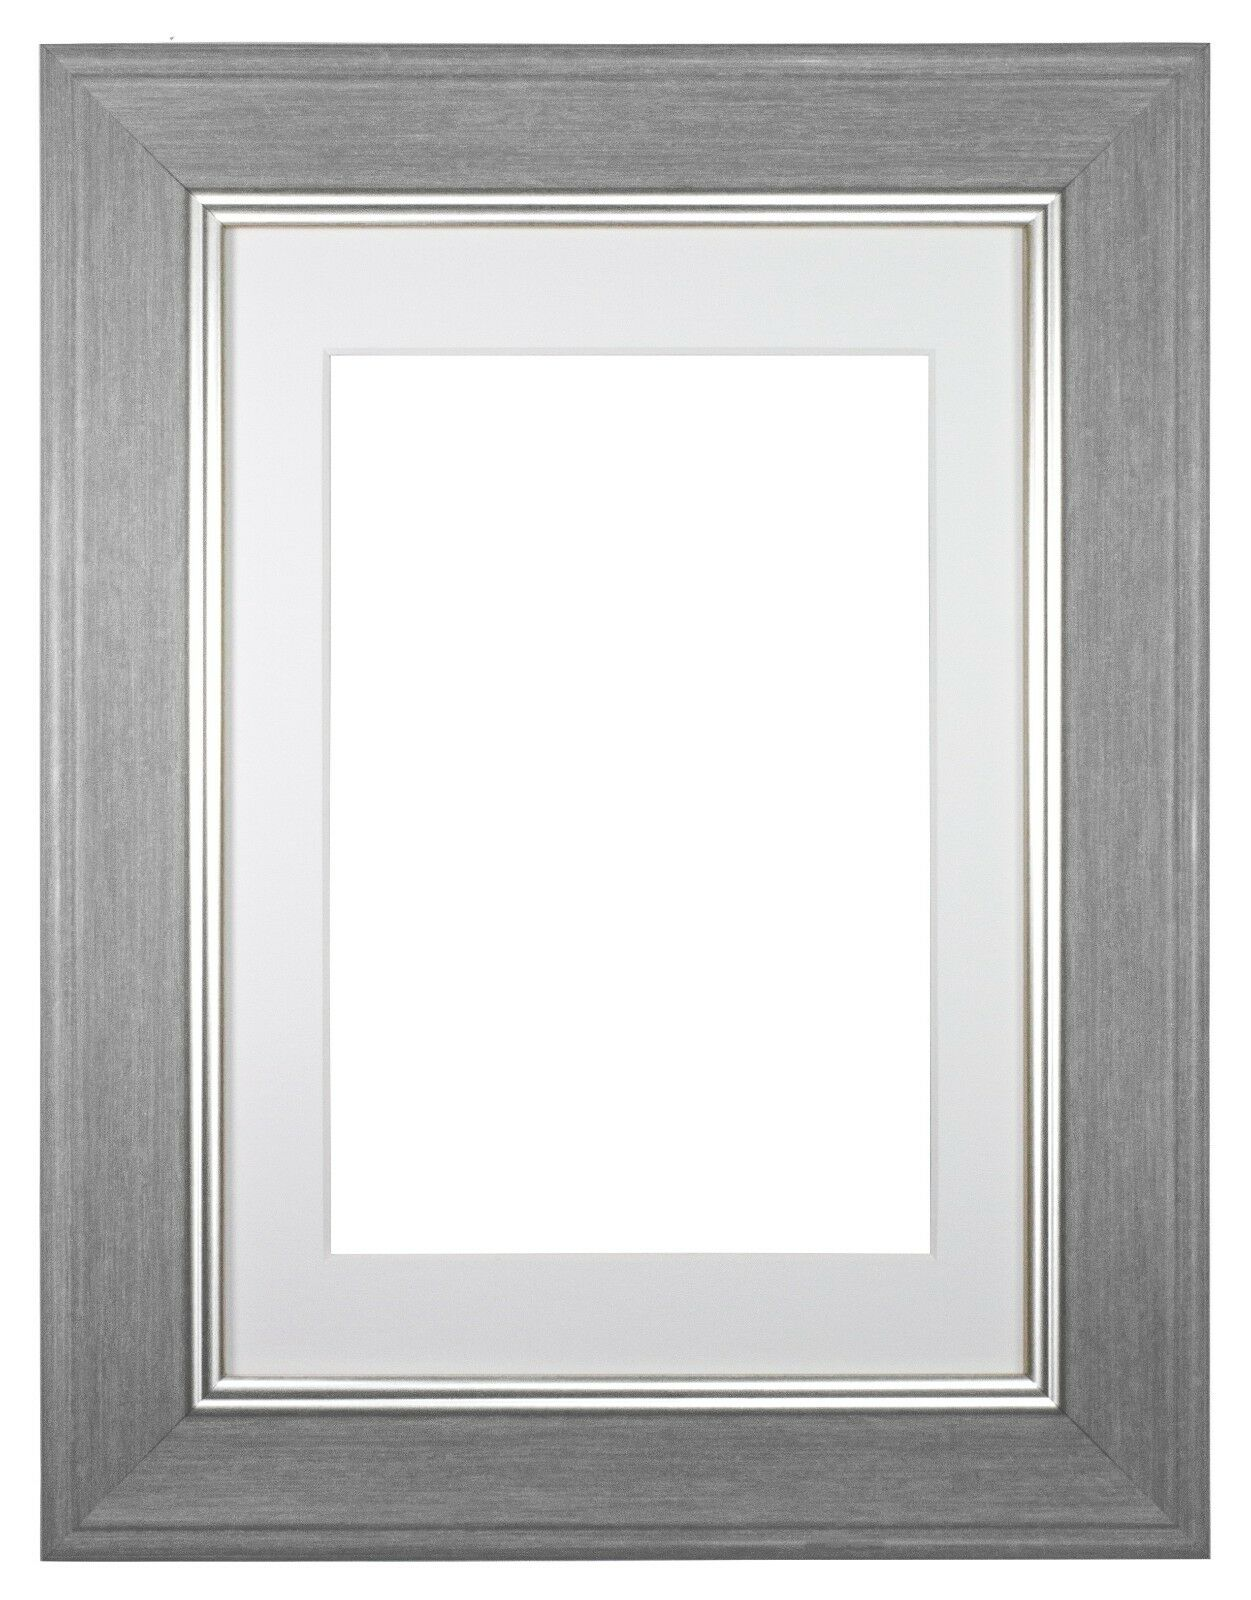 Shabby Chic Picture Frame Photo Frame Poster Grey Dark